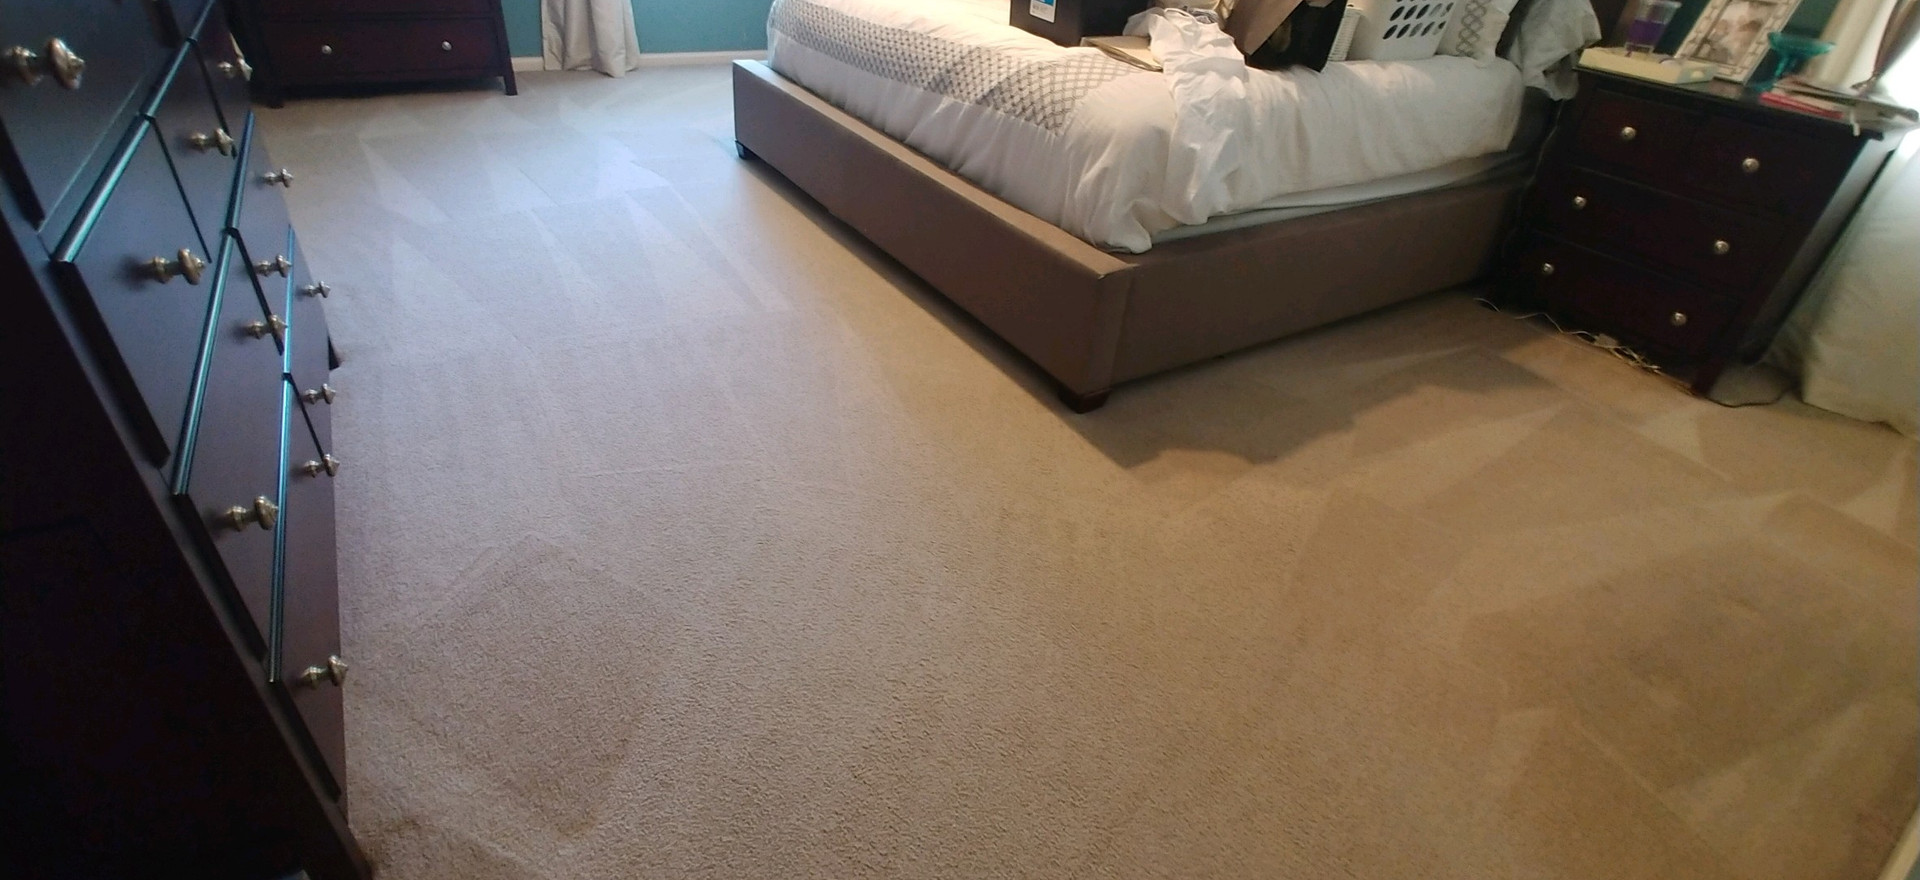 Pet Friendly Carpet Cleaning Services In West Bloomfield, MI